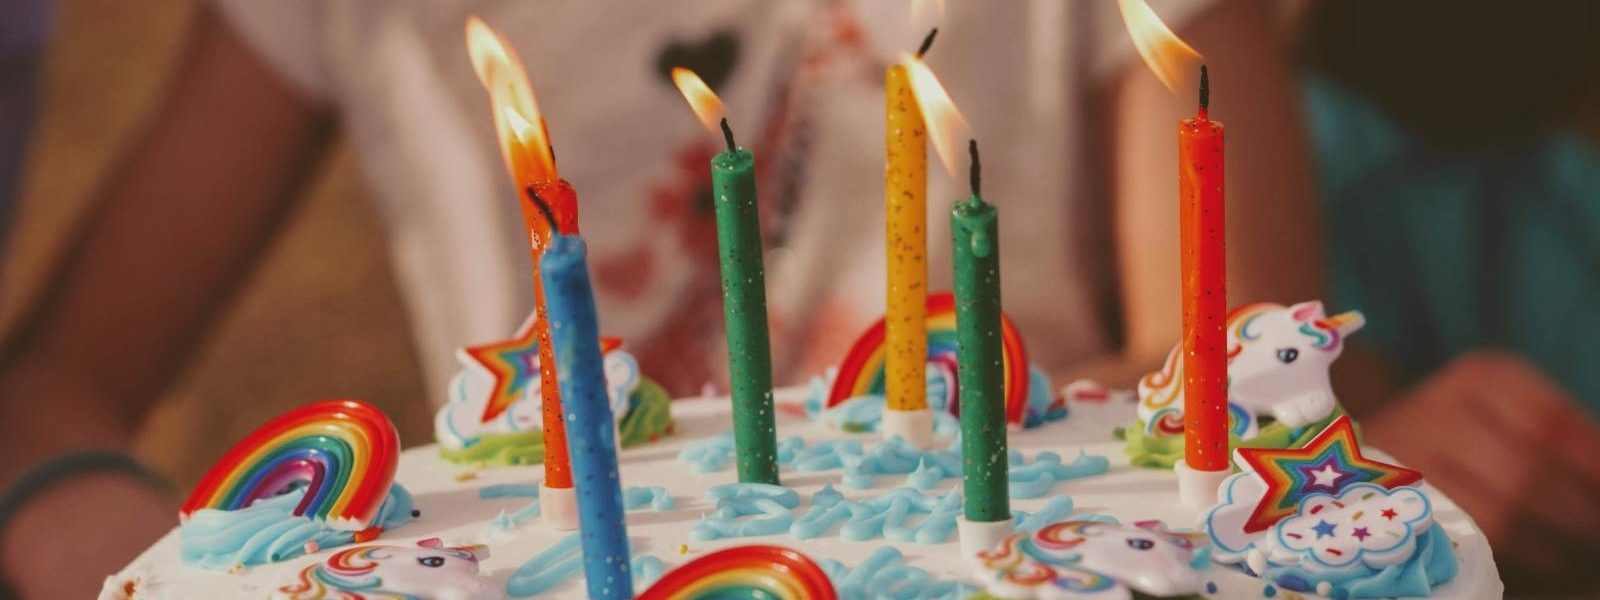 Planning The Best Kids Birthday Party Ever